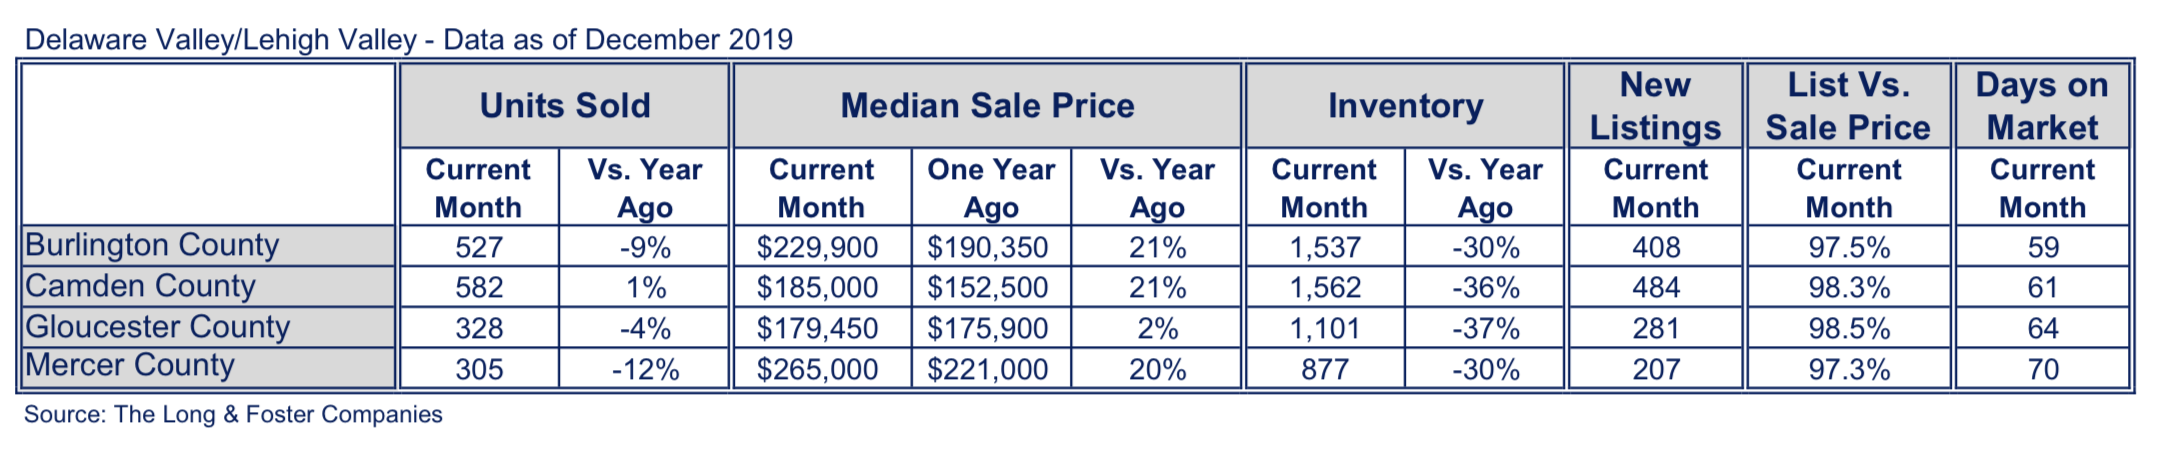 New Jersey Suburbs Market Minute Chart December 2019